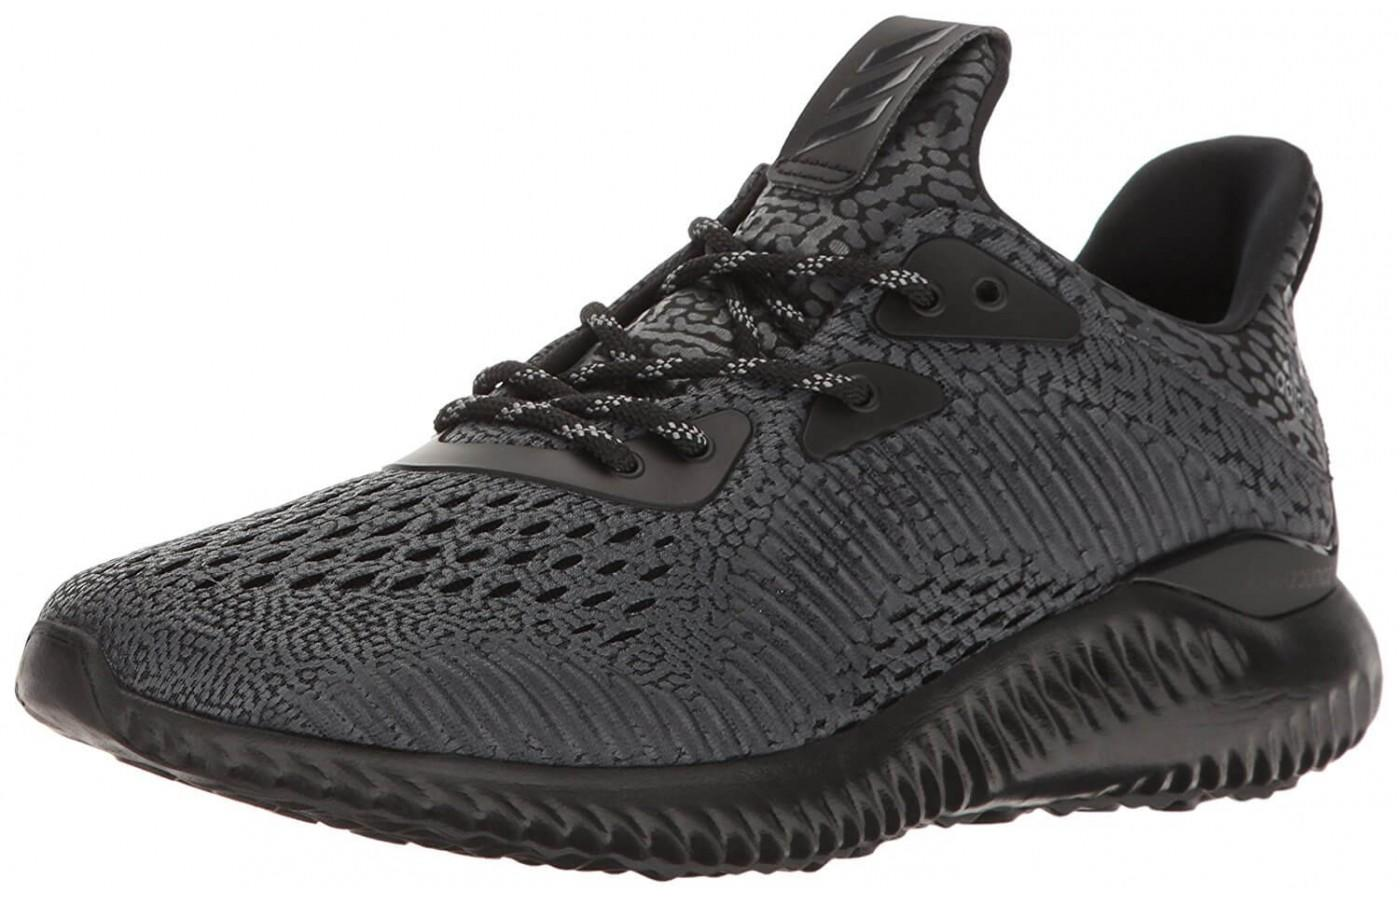 Black version of the Adidas Alphabounce AMS